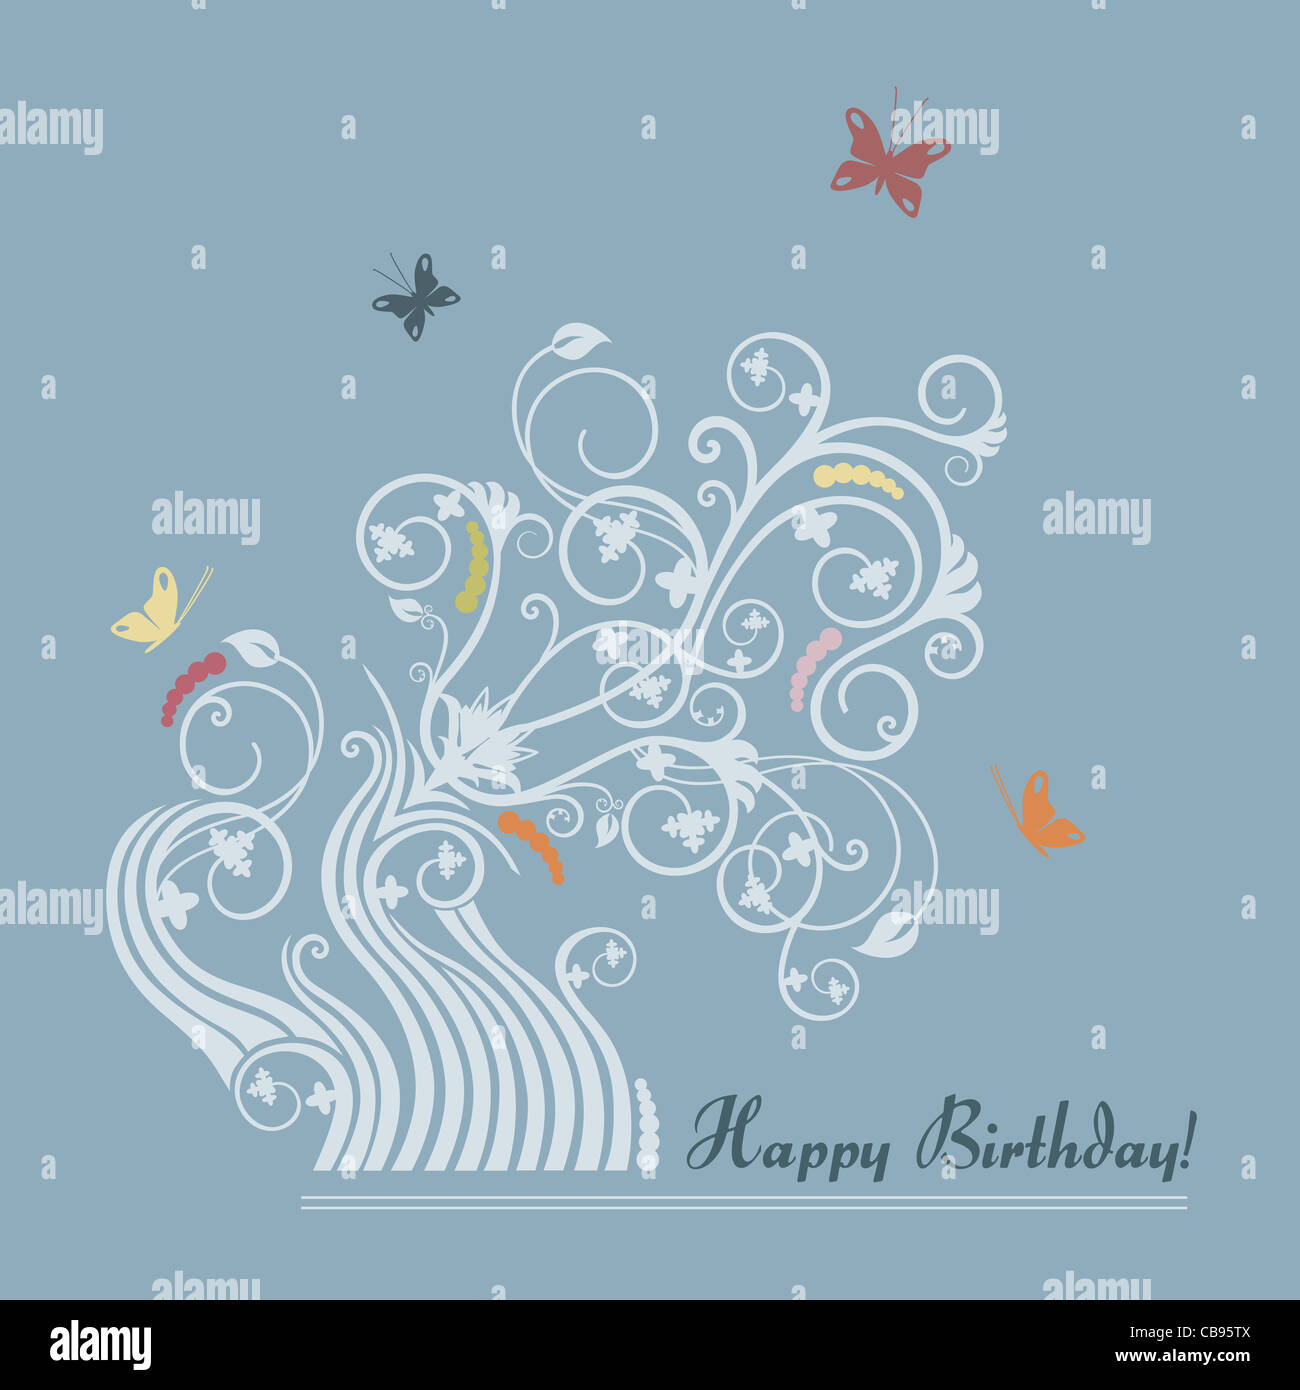 Light Blue Feminine Happy Birthday Card With Flowers And